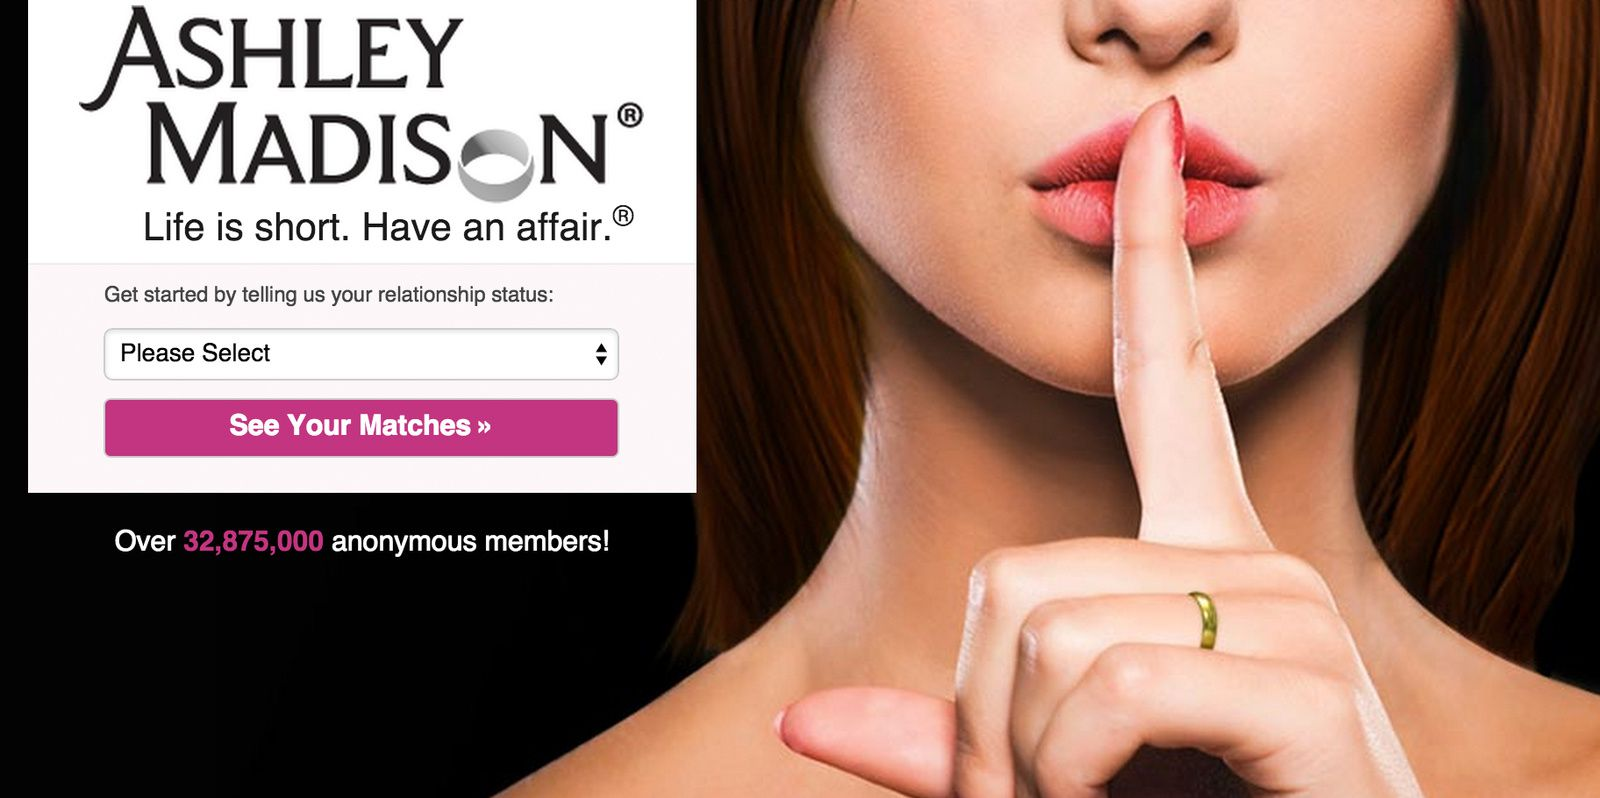 Scandale Ashley Madison : Des centaines de pasteurs concernés